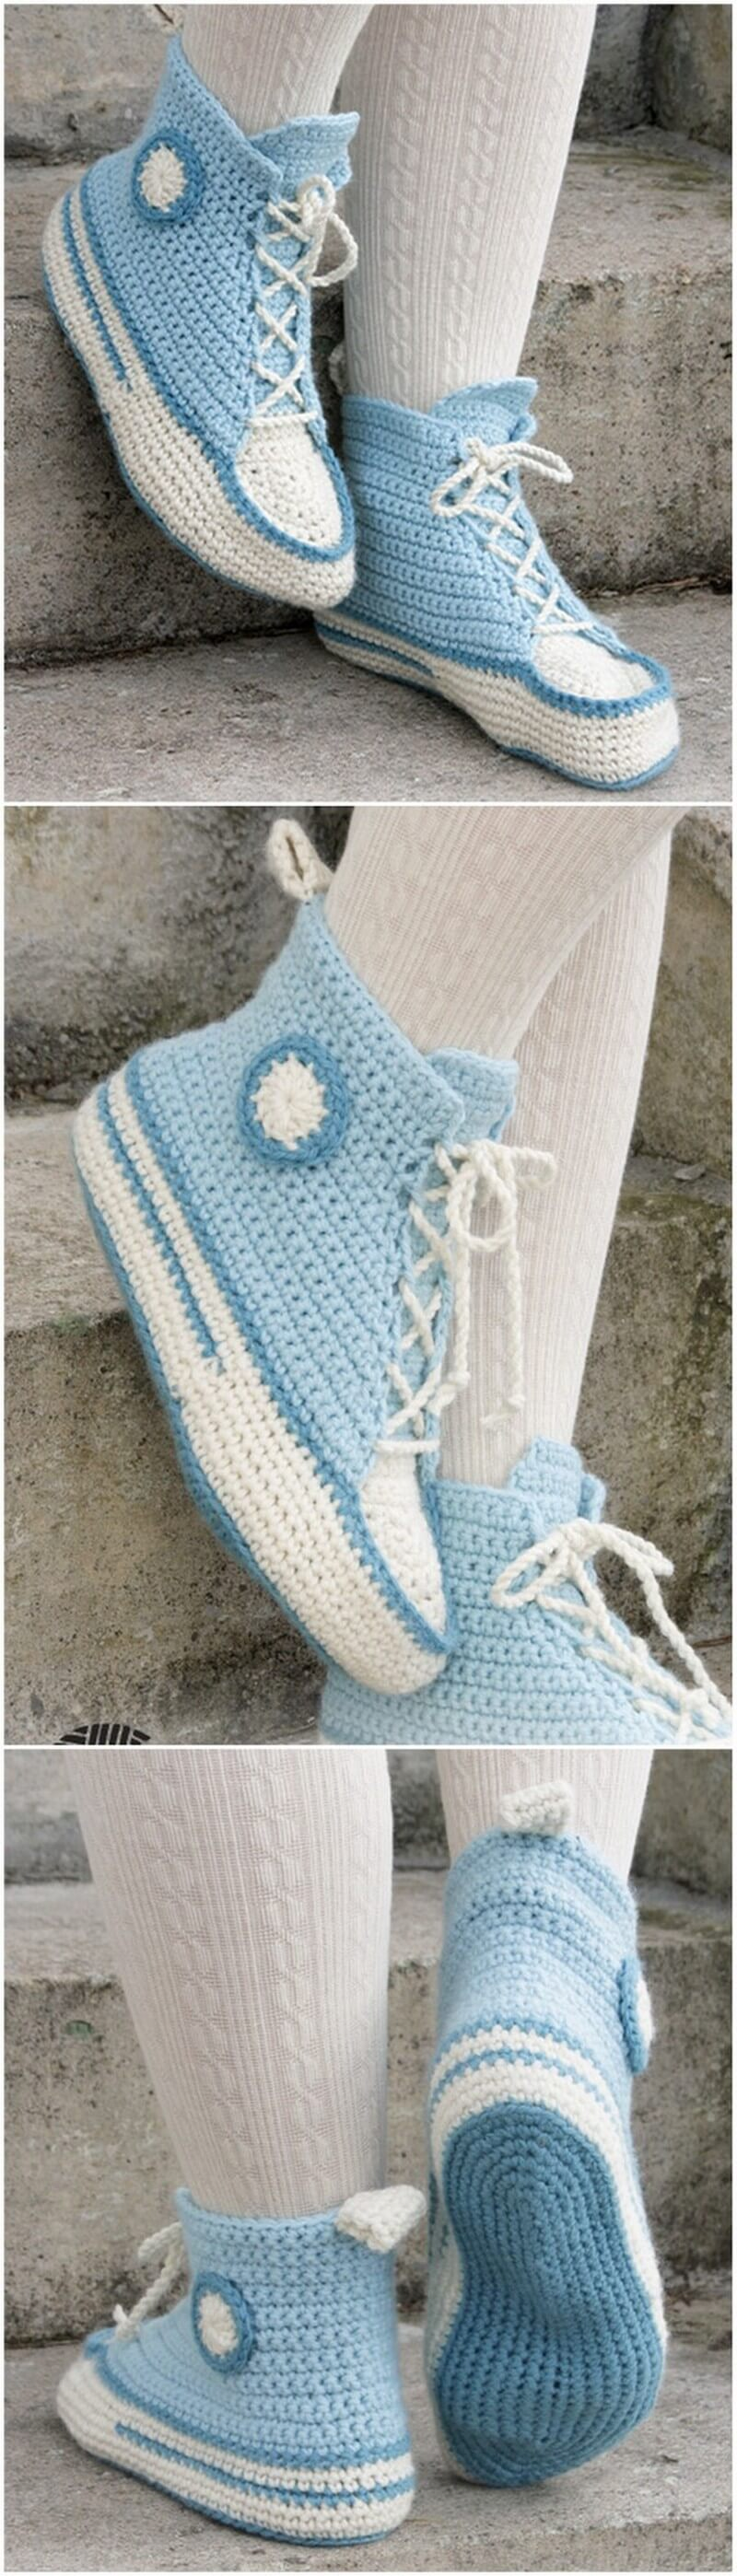 Crochet Slipper Pattern (21)